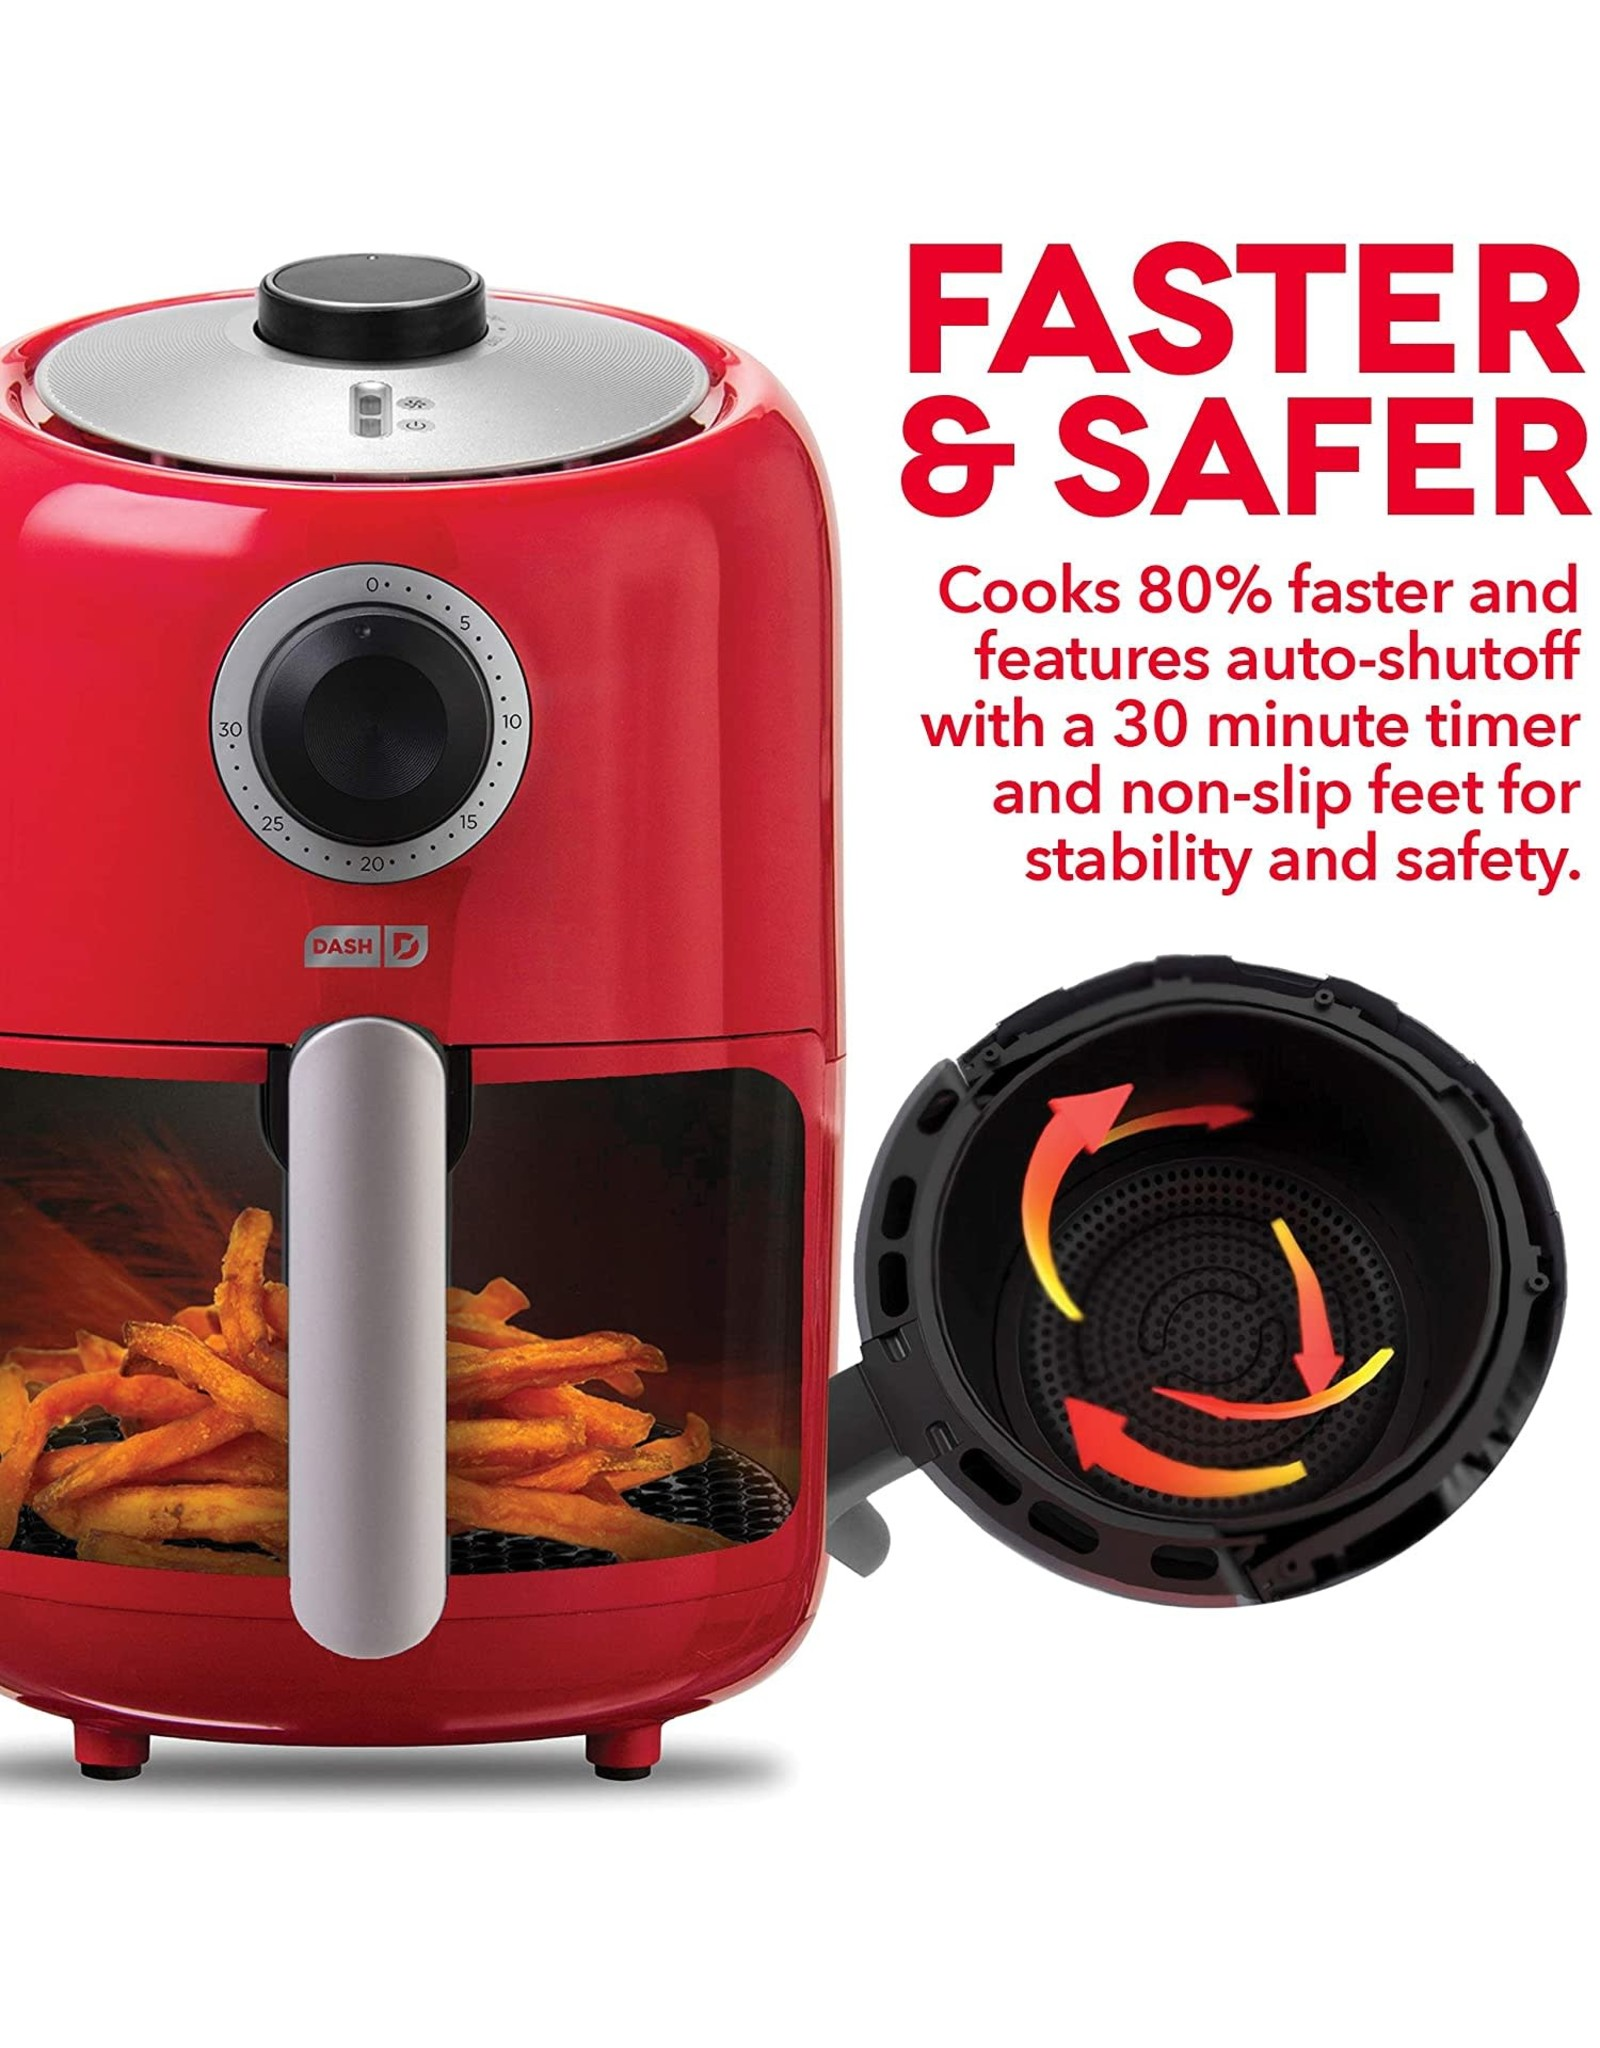 DASH Dash DCAF150GBRD02 Compact Air Fryer Oven Cooker with Temperature Control, Non Stick Fry Basket, Recipe Guide + Auto Shut off Feature, 2qt, Red